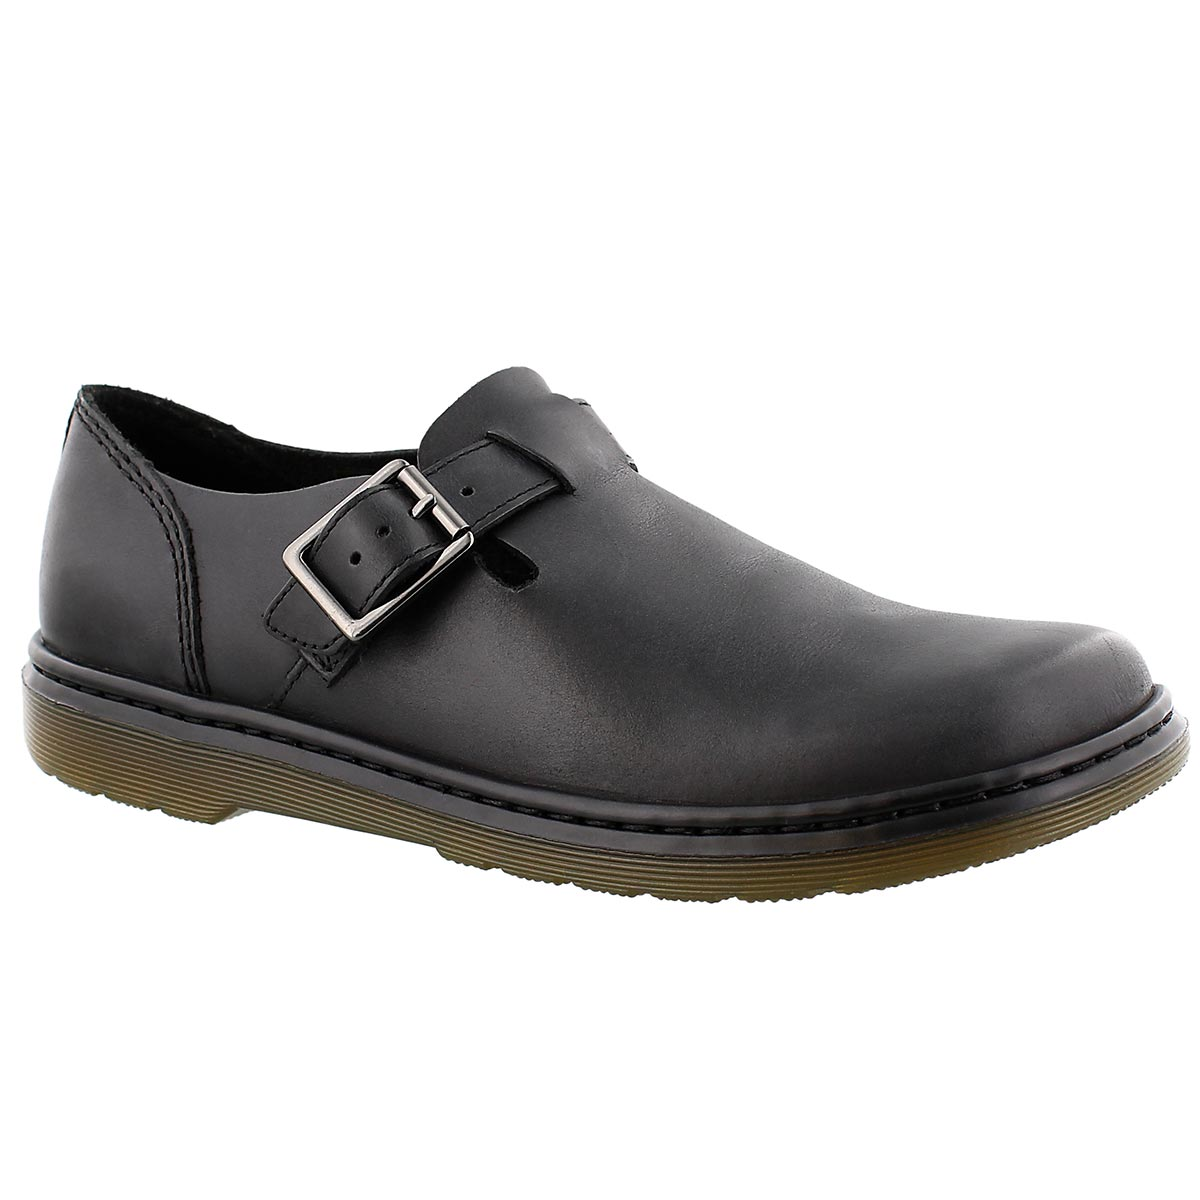 Lds Patricia black casual buckle loafer